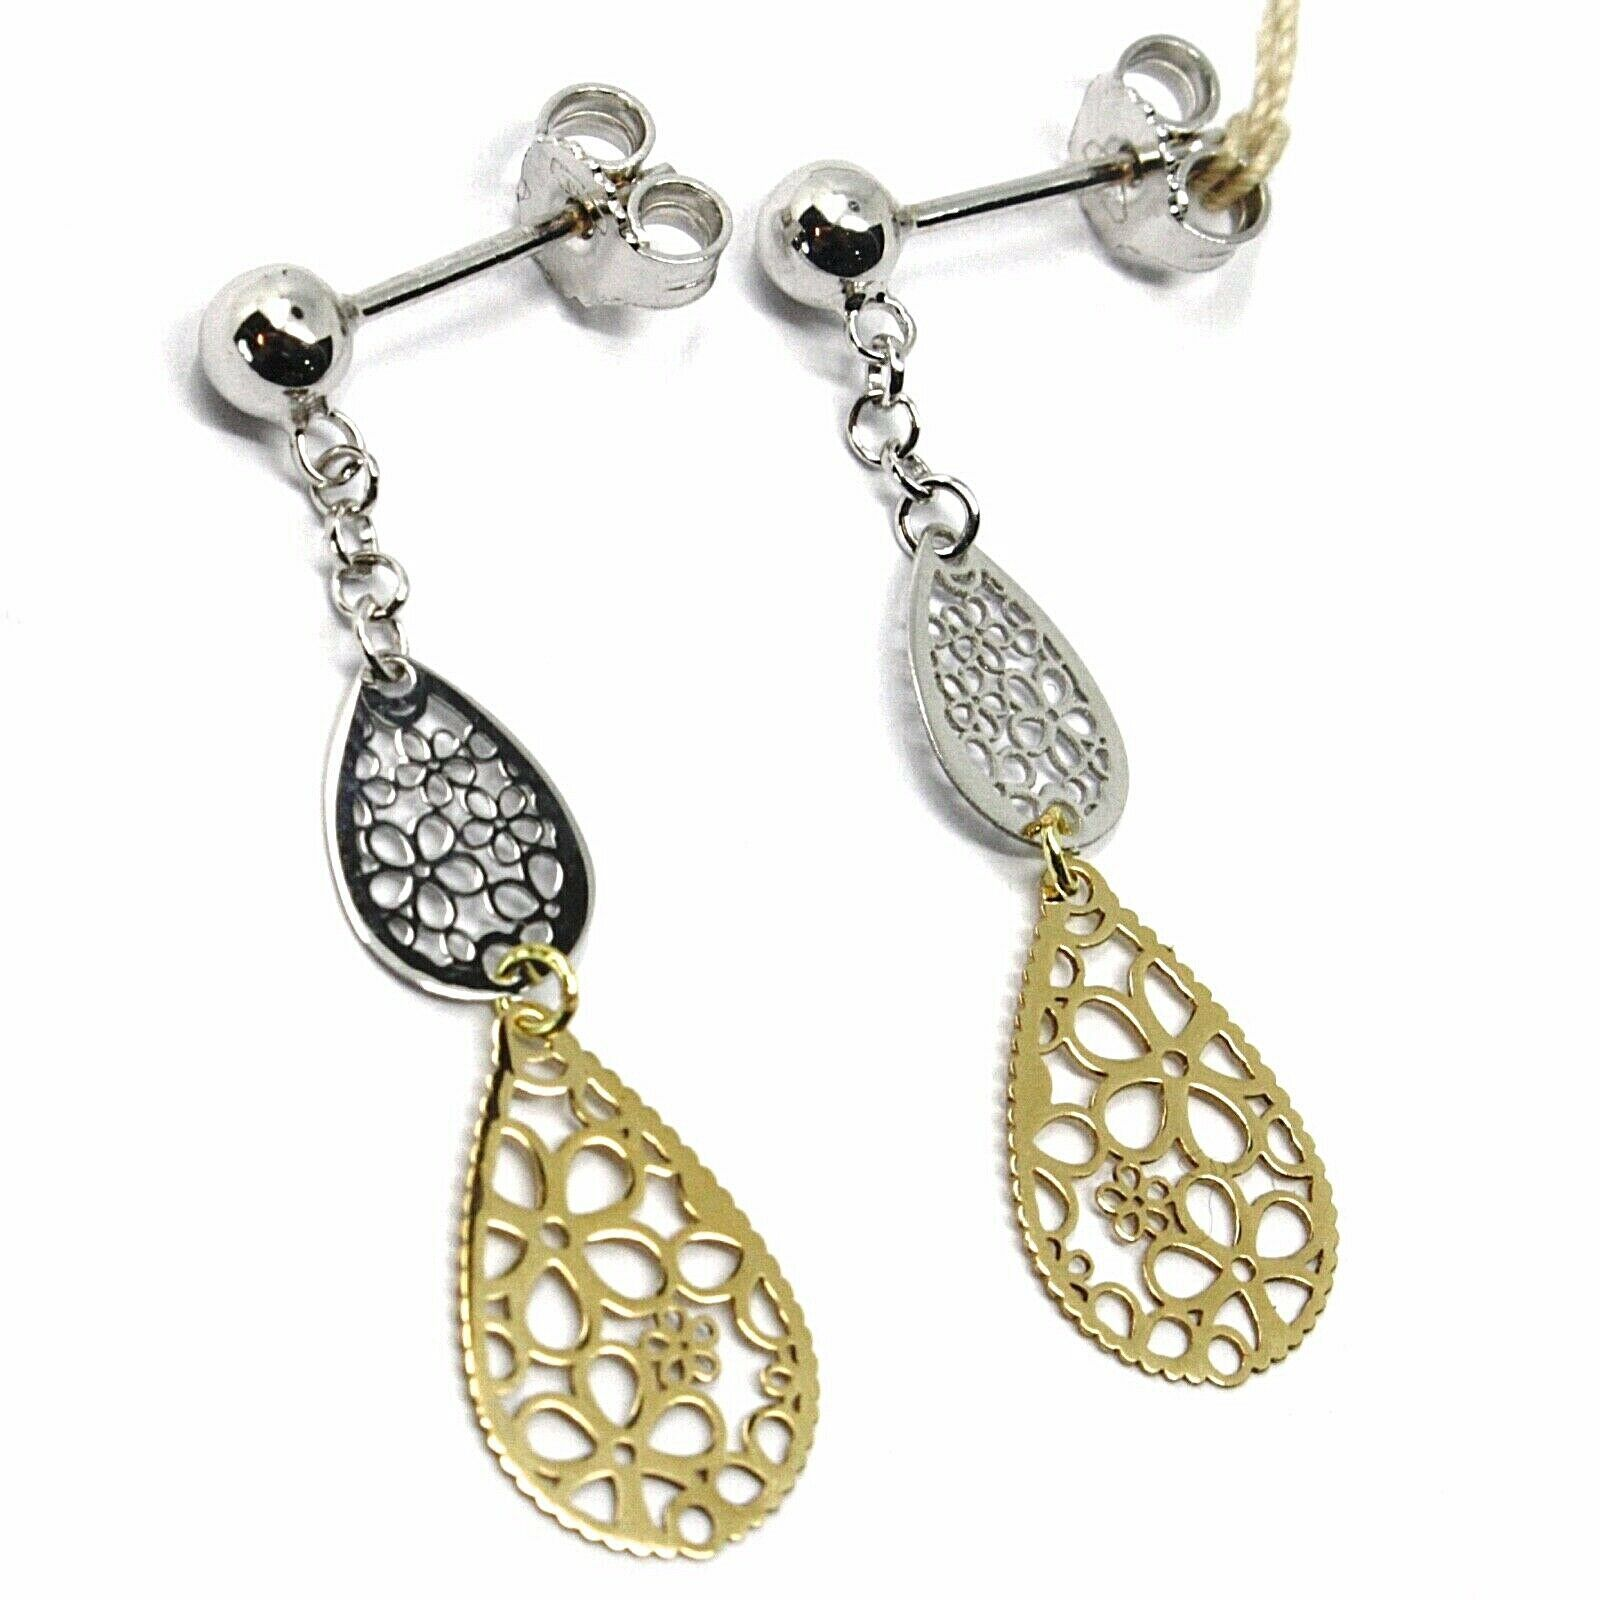 18K YELLOW WHITE GOLD PENDANT EARRINGS, DOUBLE FLAT DROPS WITH FLOWERS, 3.5cm